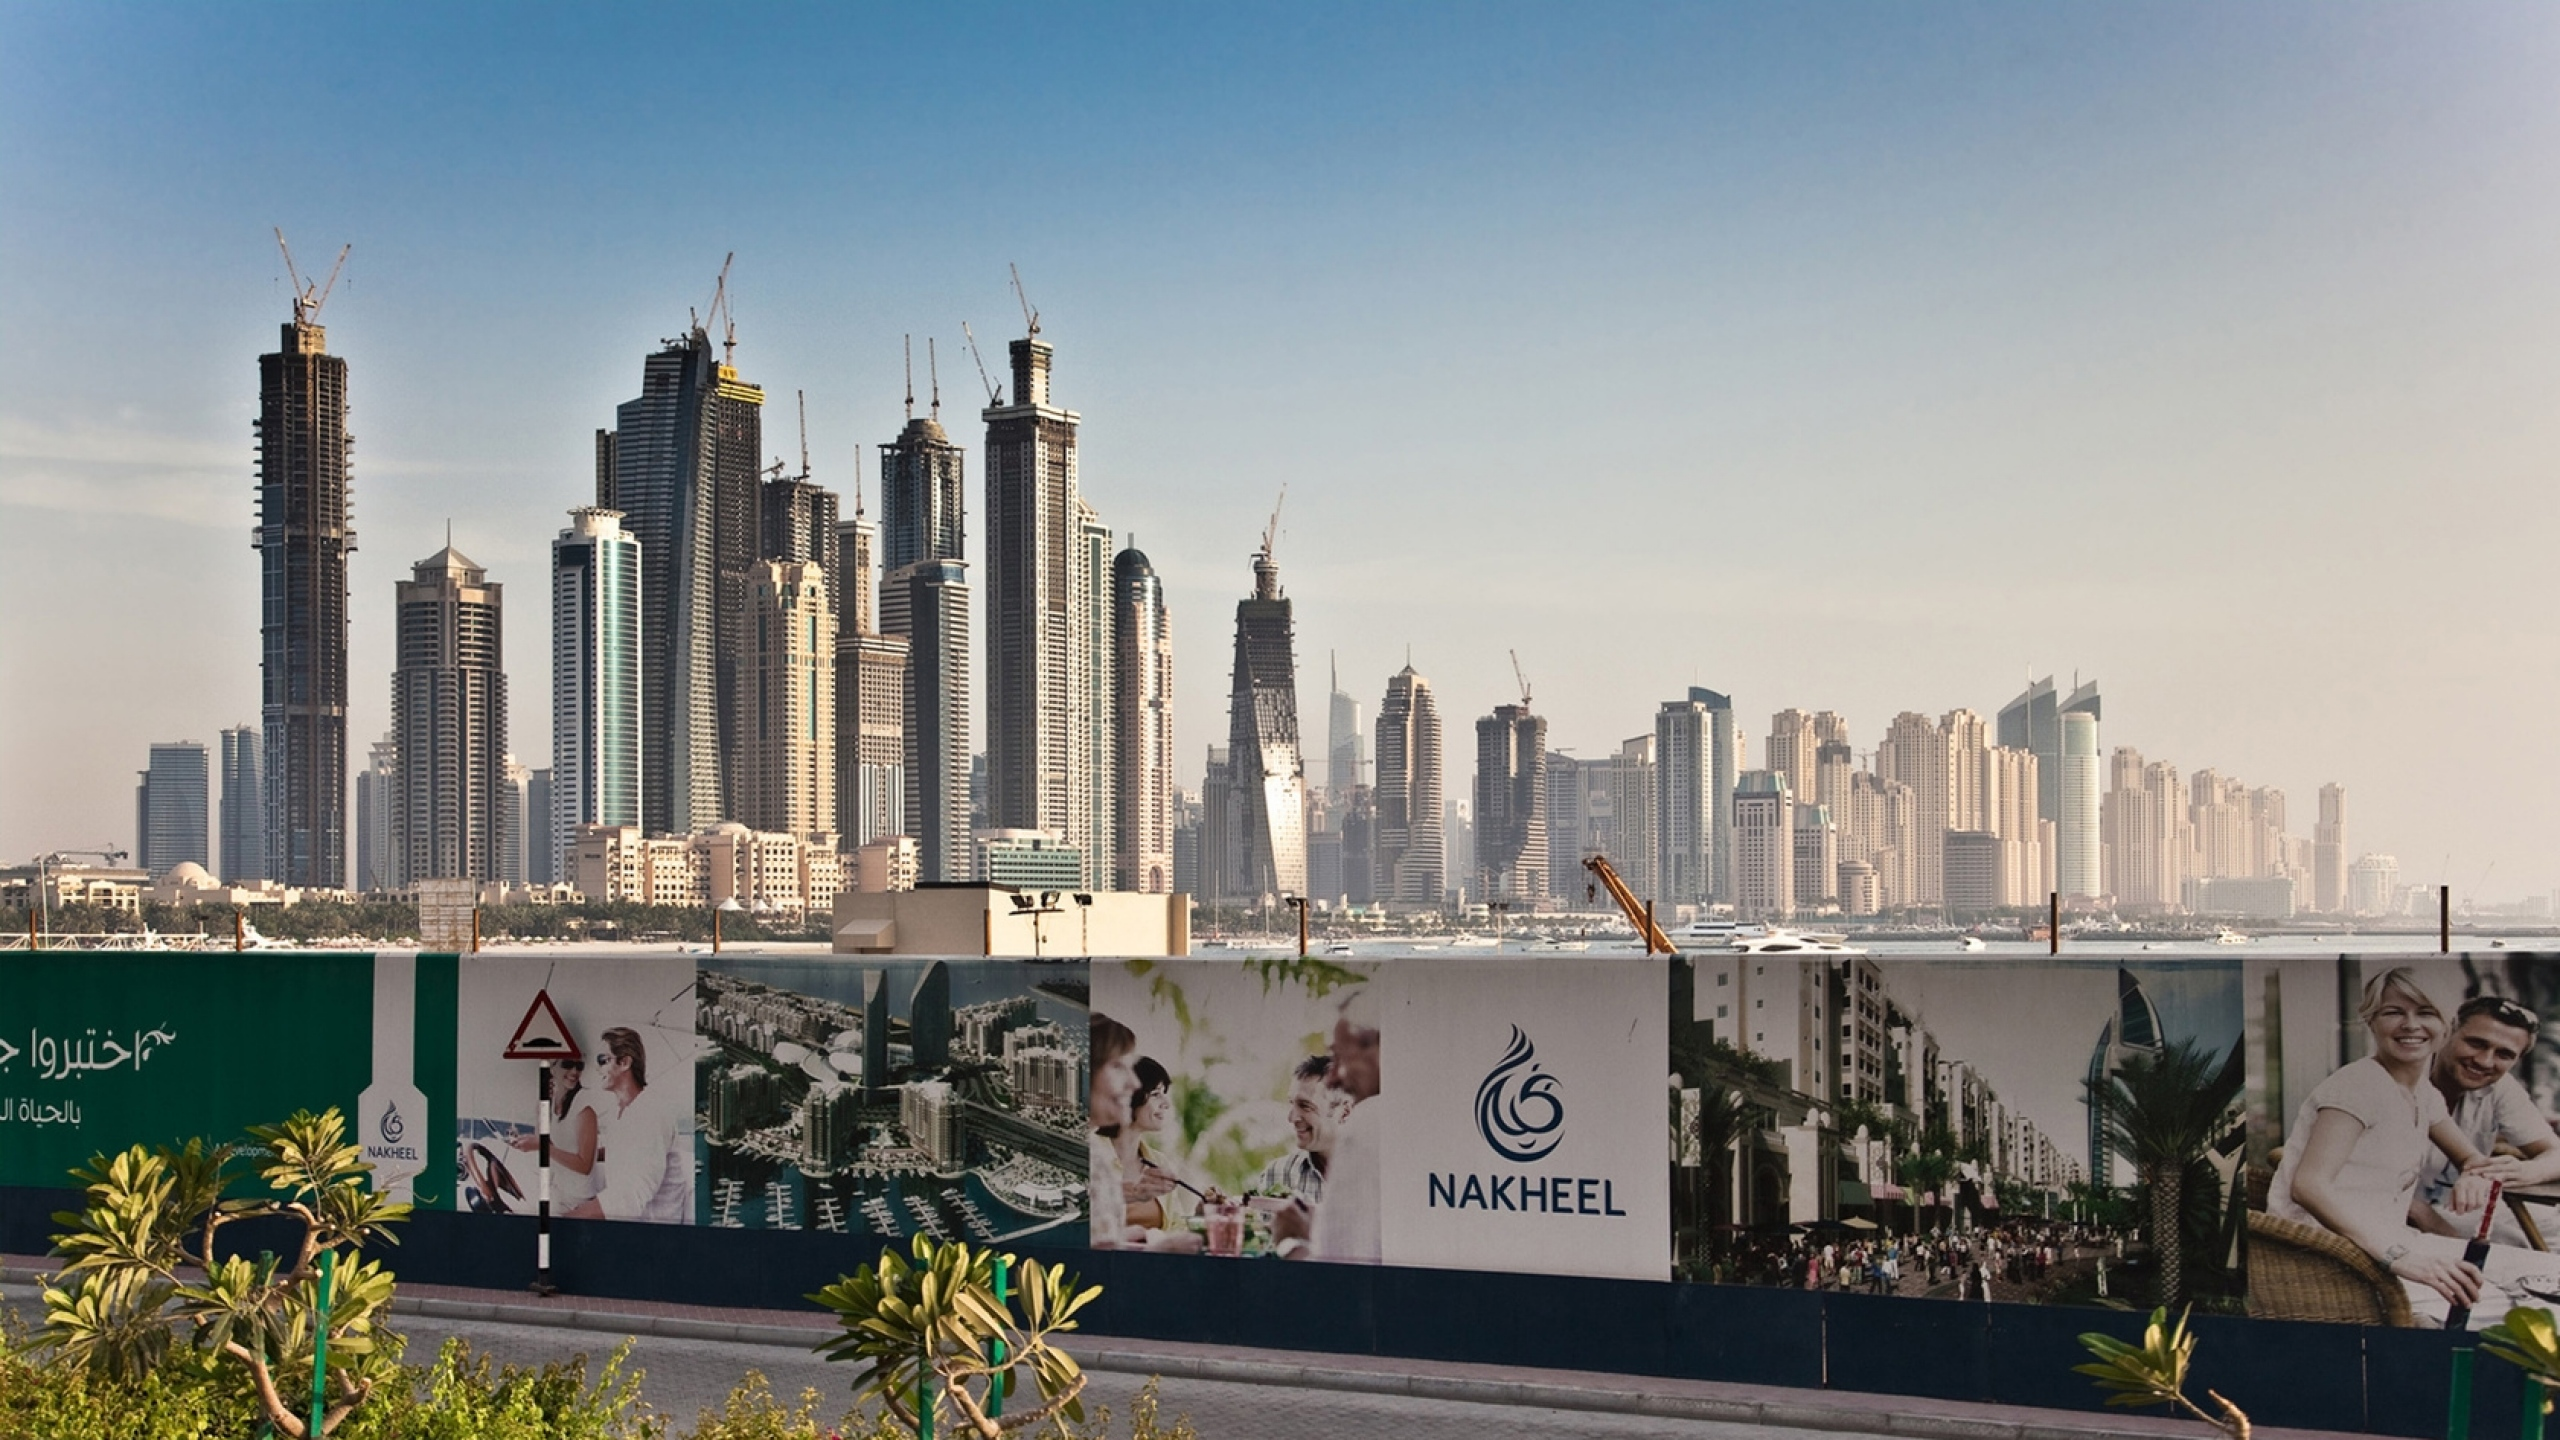 2560x1440 dubai uae skyscrapers building youtube channel cover for Home wallpaper uae